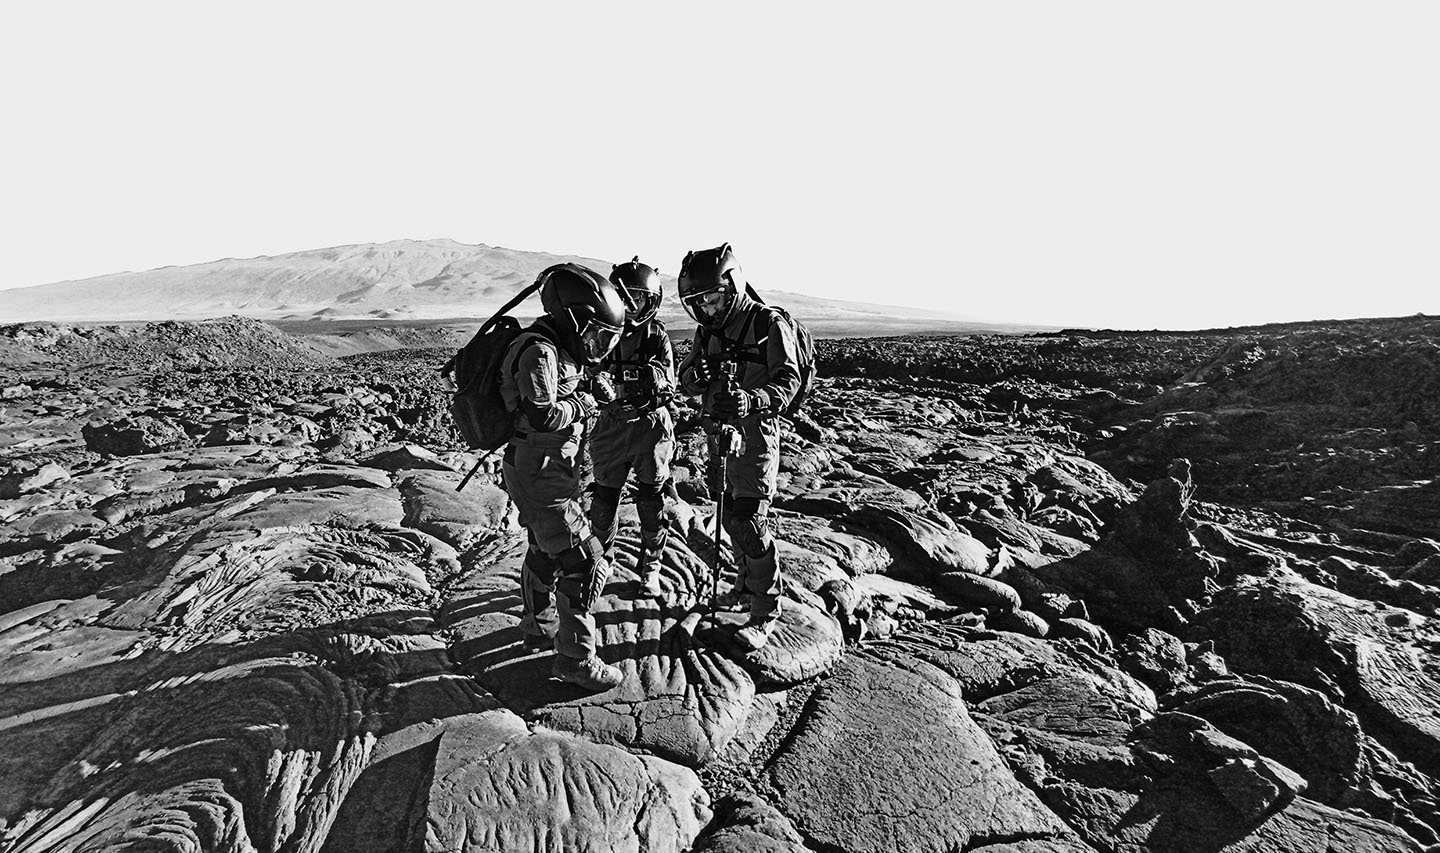 An image of 3 analogue astronauts exploring the lava fields of Hawaii.